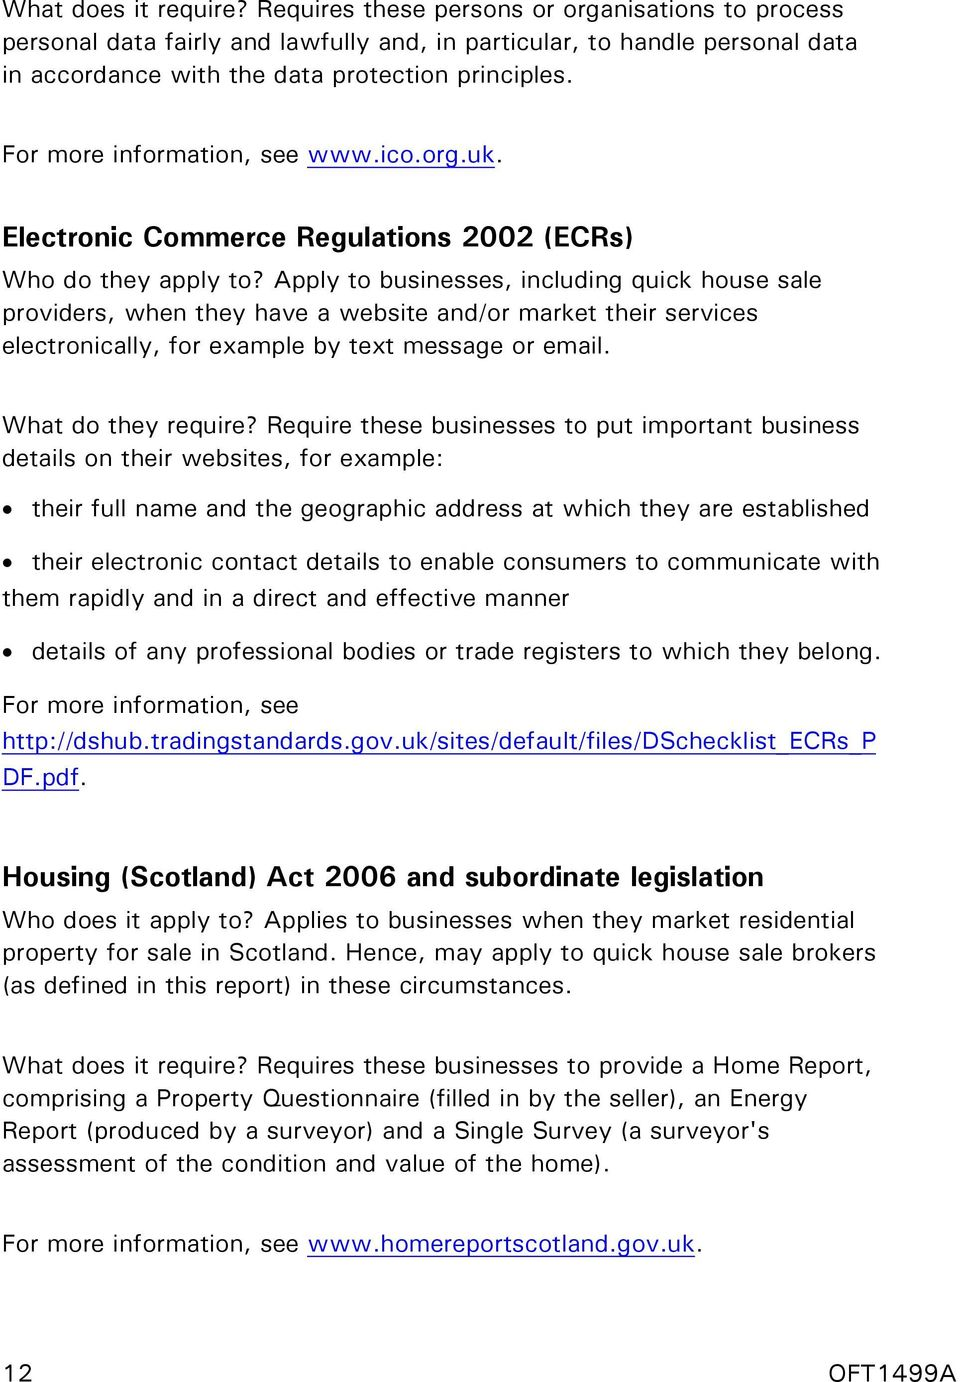 For more information, see www.ico.org.uk. Electronic Commerce Regulations 2002 (ECRs) Who do they apply to?